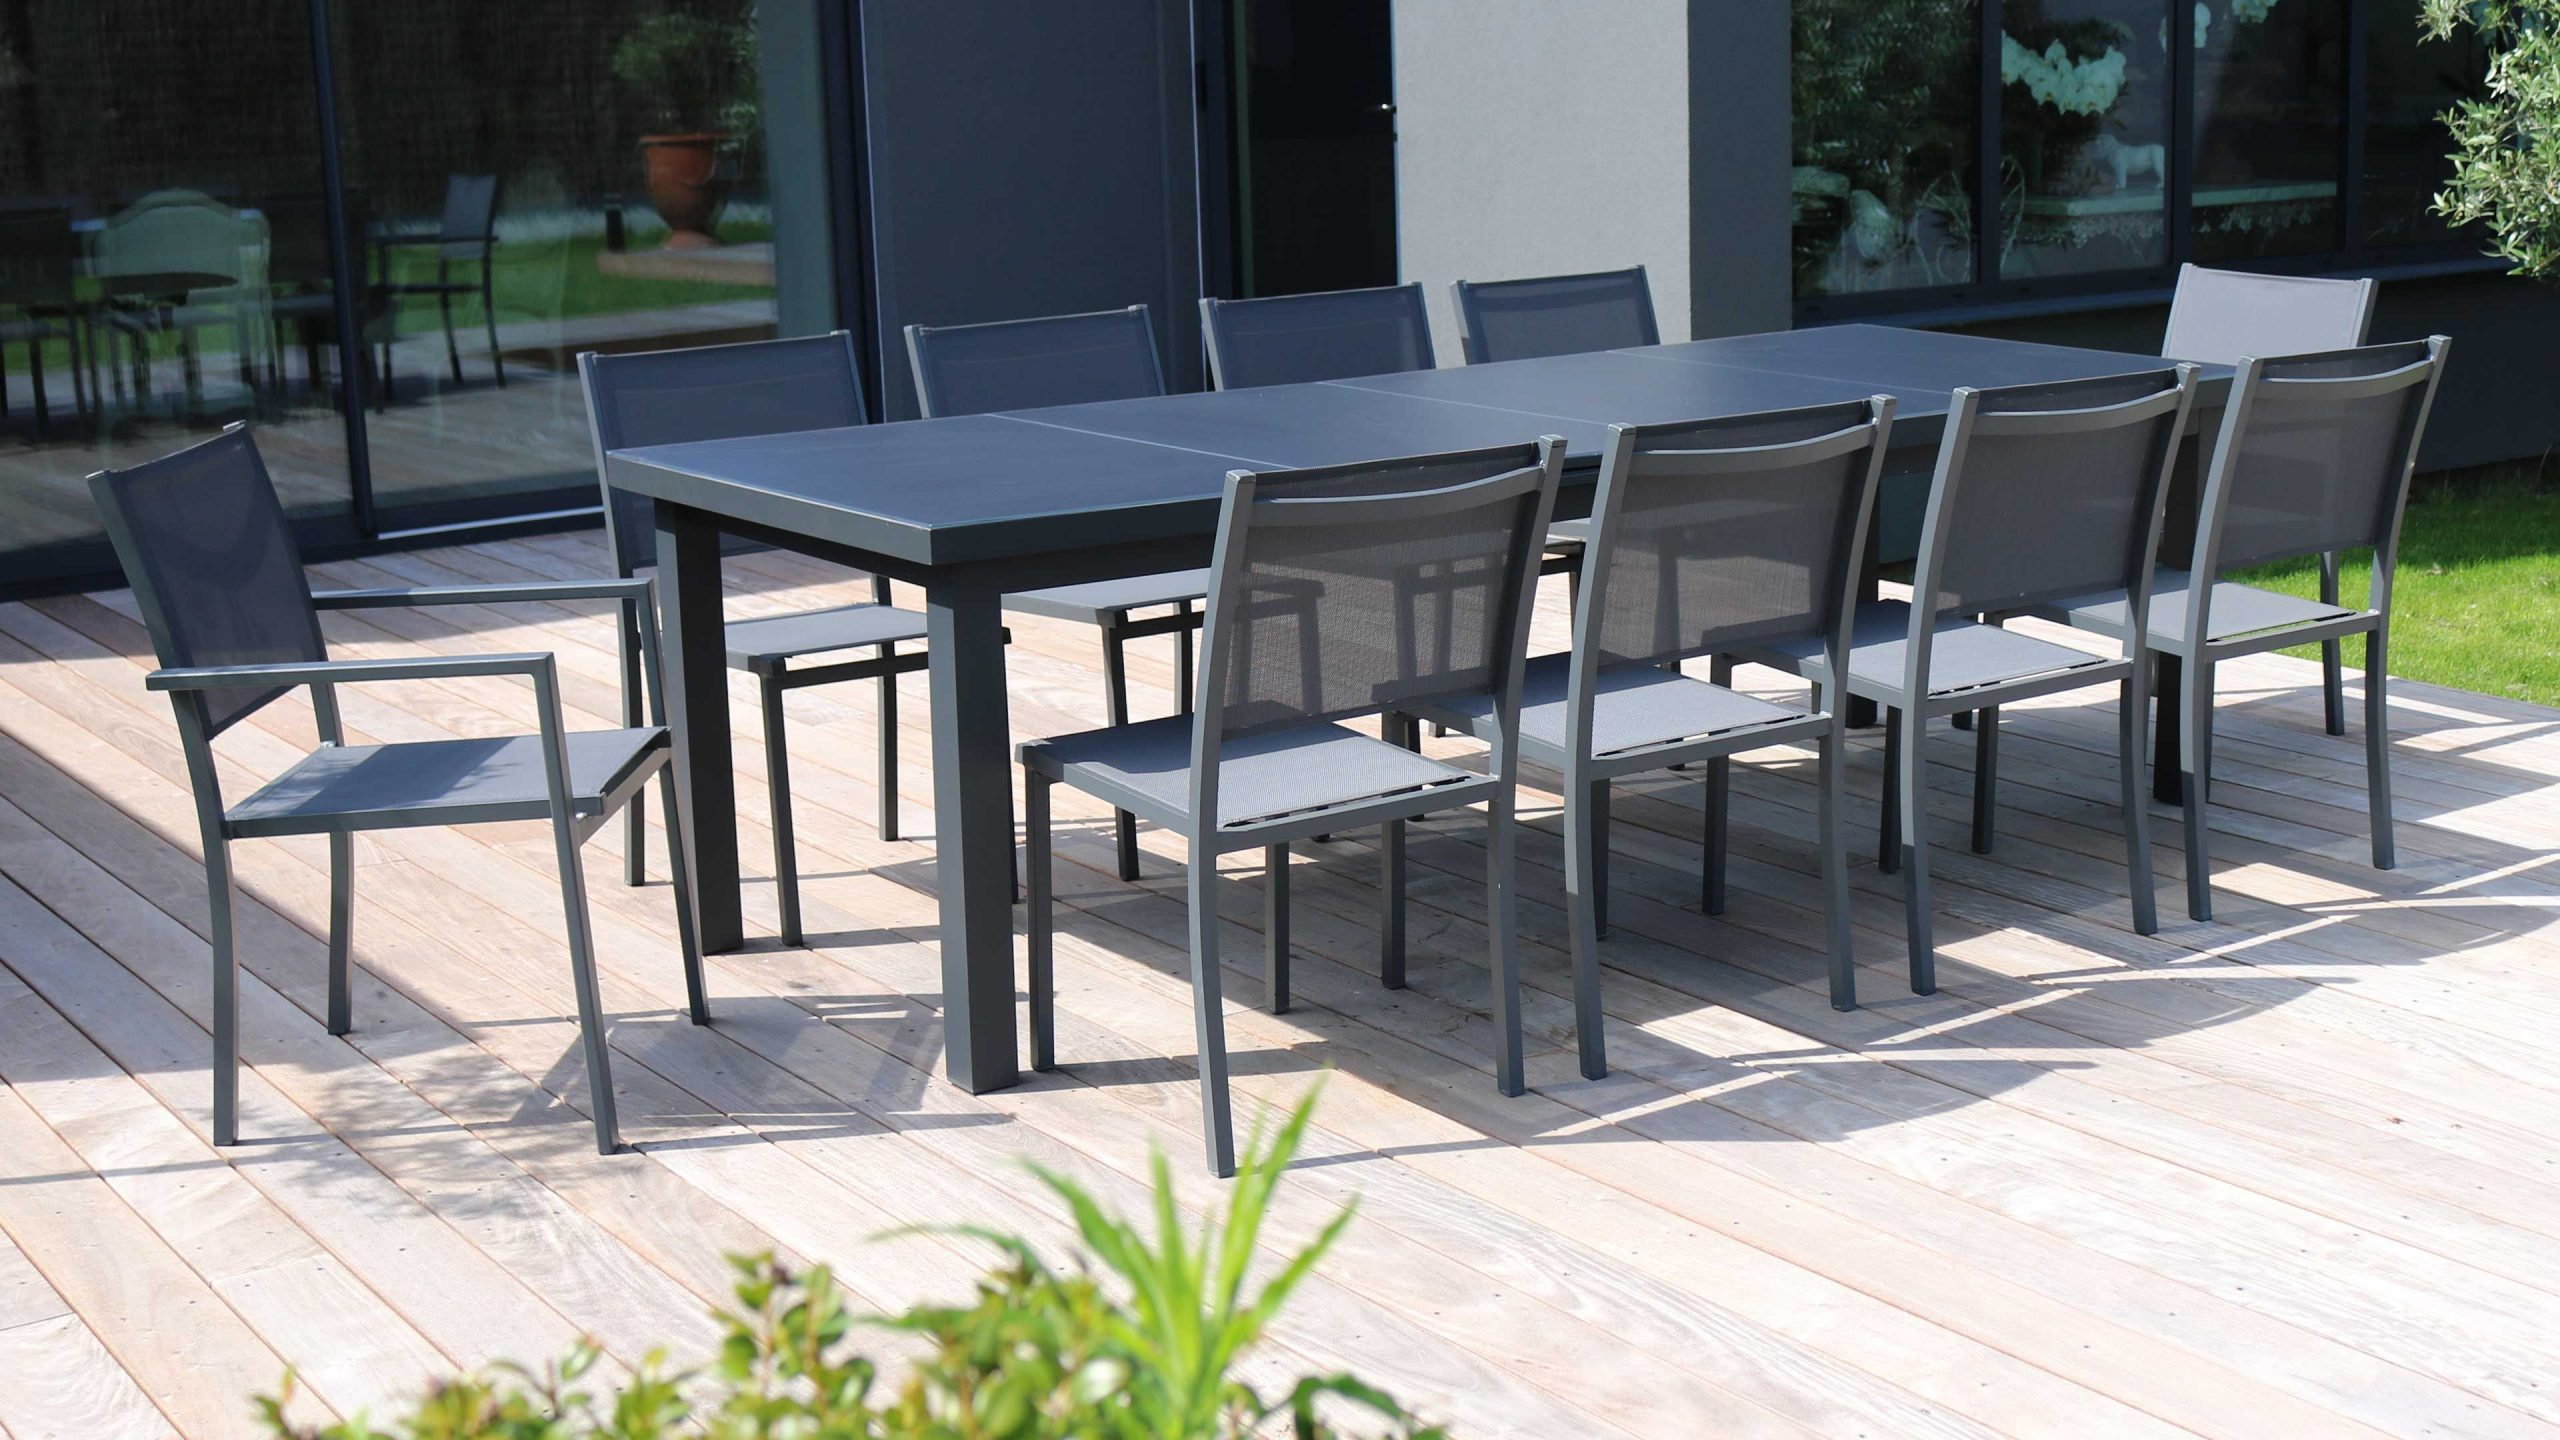 Table Jardin Extensible Rallonge 256/320 Cm 10 Places encequiconcerne Table De Jardin Extensible 320 Cm